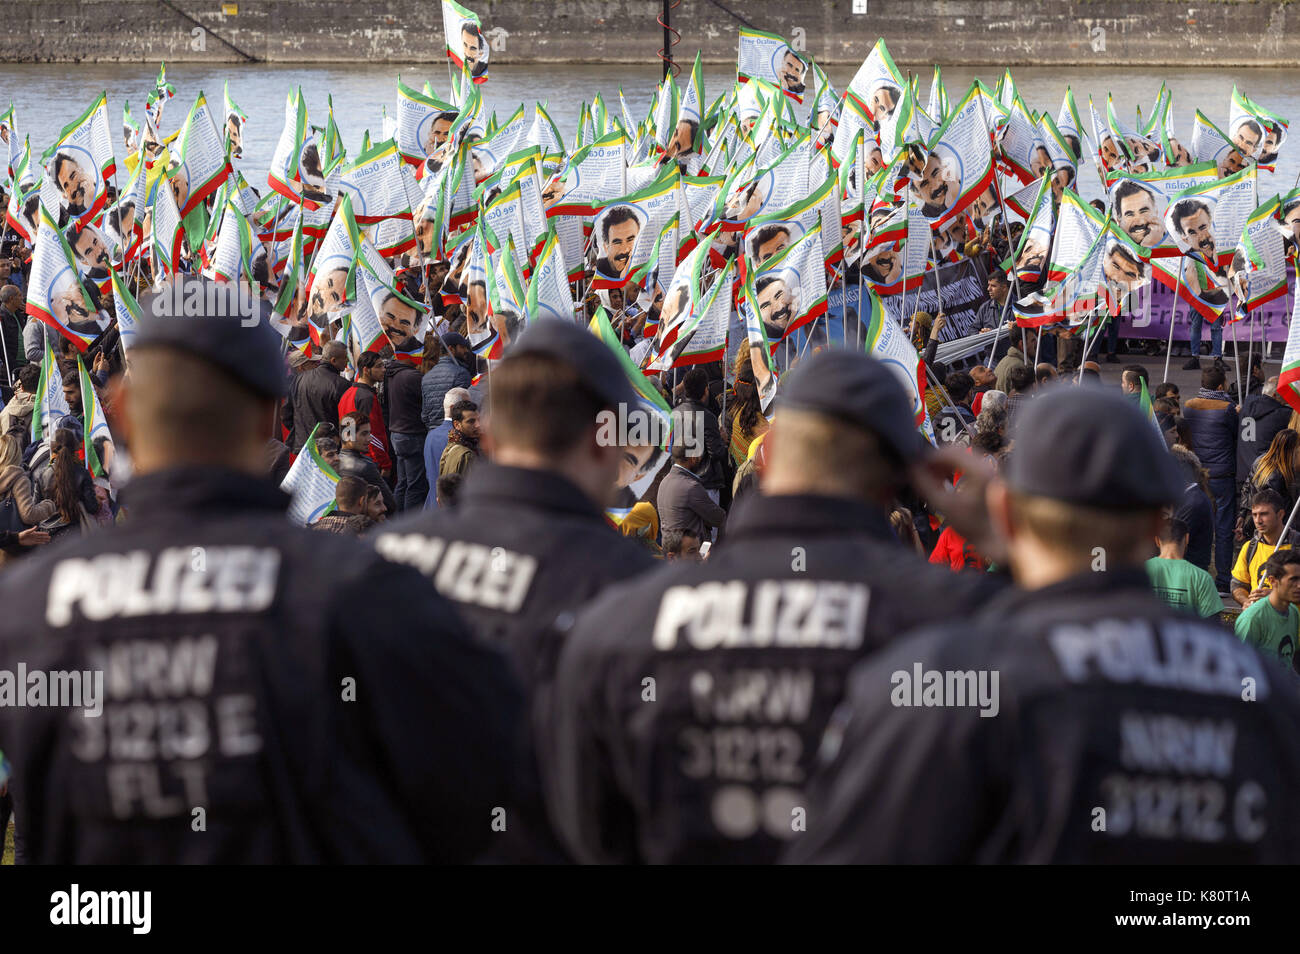 Cologne, Germany. 16th Sep, 2017. Participants of the international Kurdish culture festival wave flags showing Öcalan, the leader of the Kurdistan Workers' Party (PKK), at the Deutzer shipyard in Cologne, Germany, 16 September 2017. Police officers observing the situation can be seen in the foreground. Turkey ordered the German ambassador in Ankara to the Foreign Ministry protesting against the Kurdish festival in Cologne. Photo: Christoph Hardt/Geisler-Fotopres/Geisler-Fotopress/dpa/dpa/Alamy Live News - Stock Image